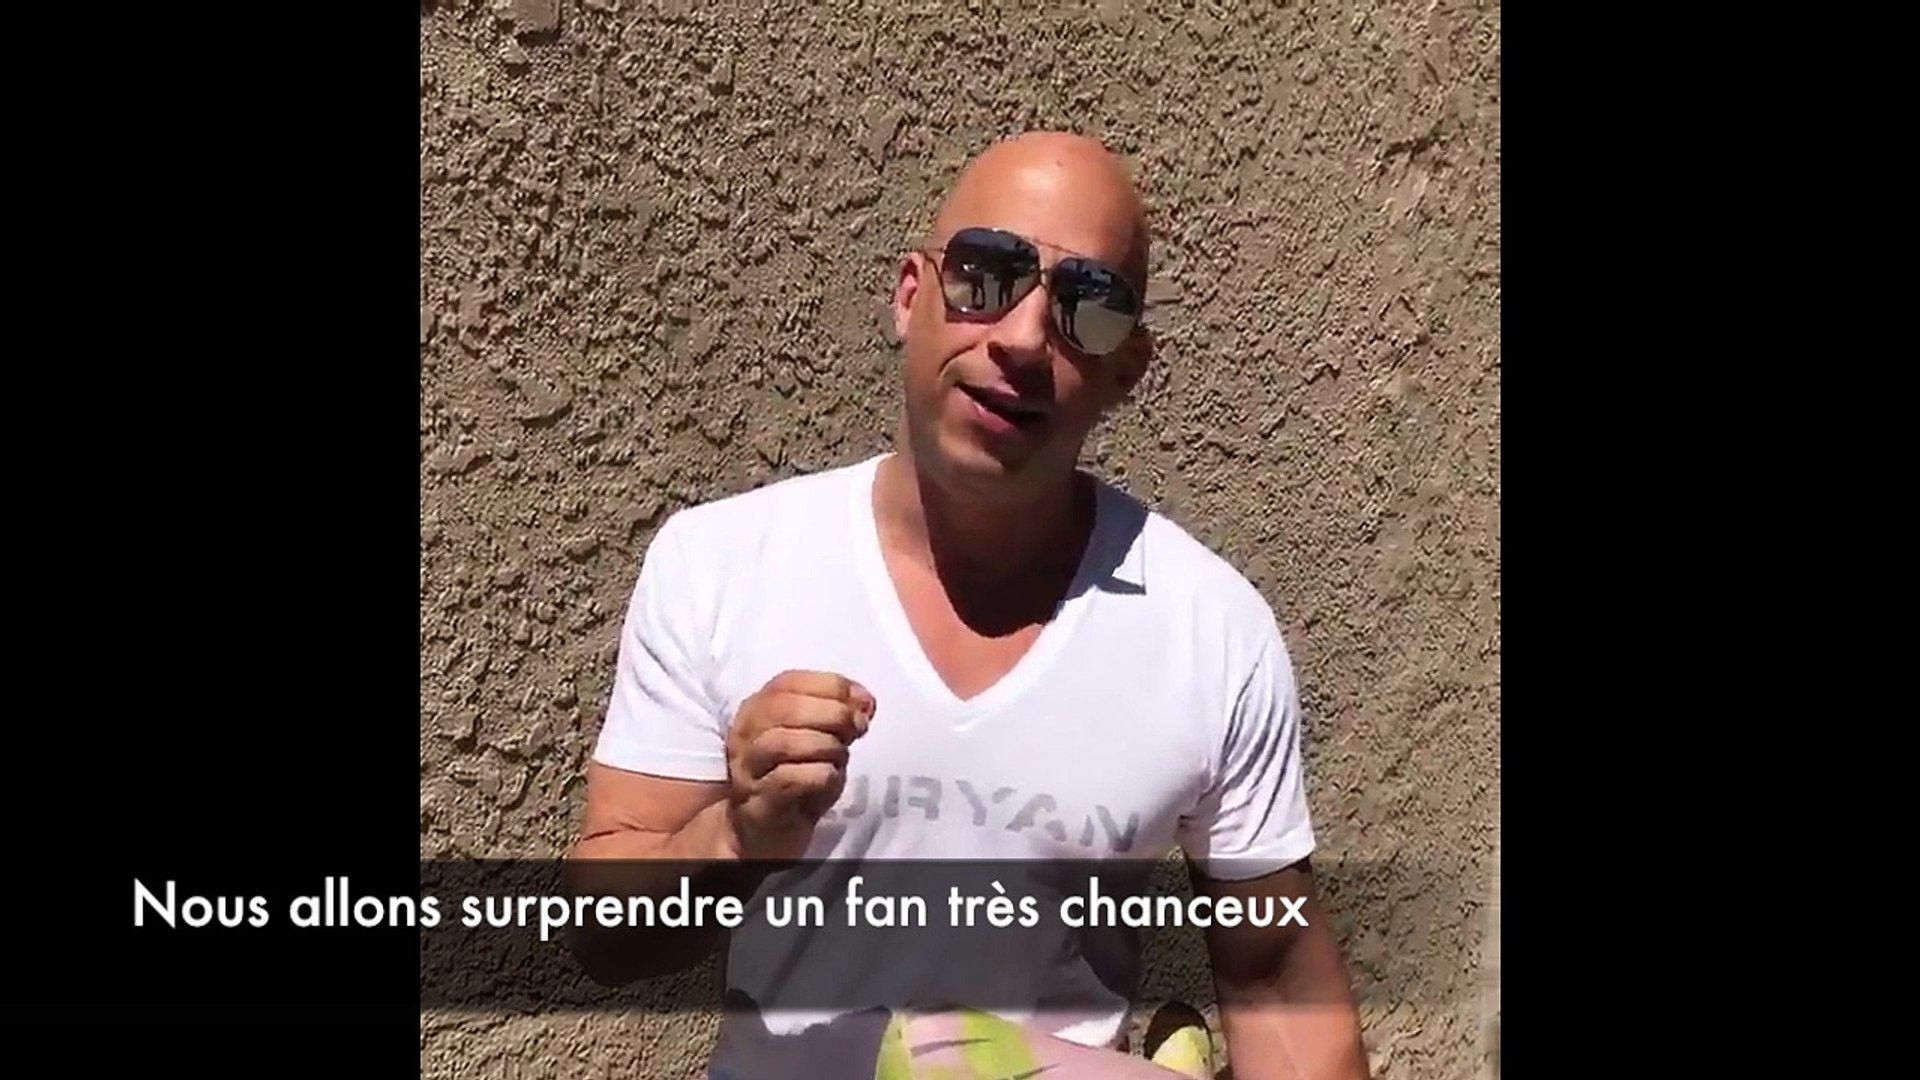 Vin Diesel brings a Groot Toy to a fan - Marvel Avengers